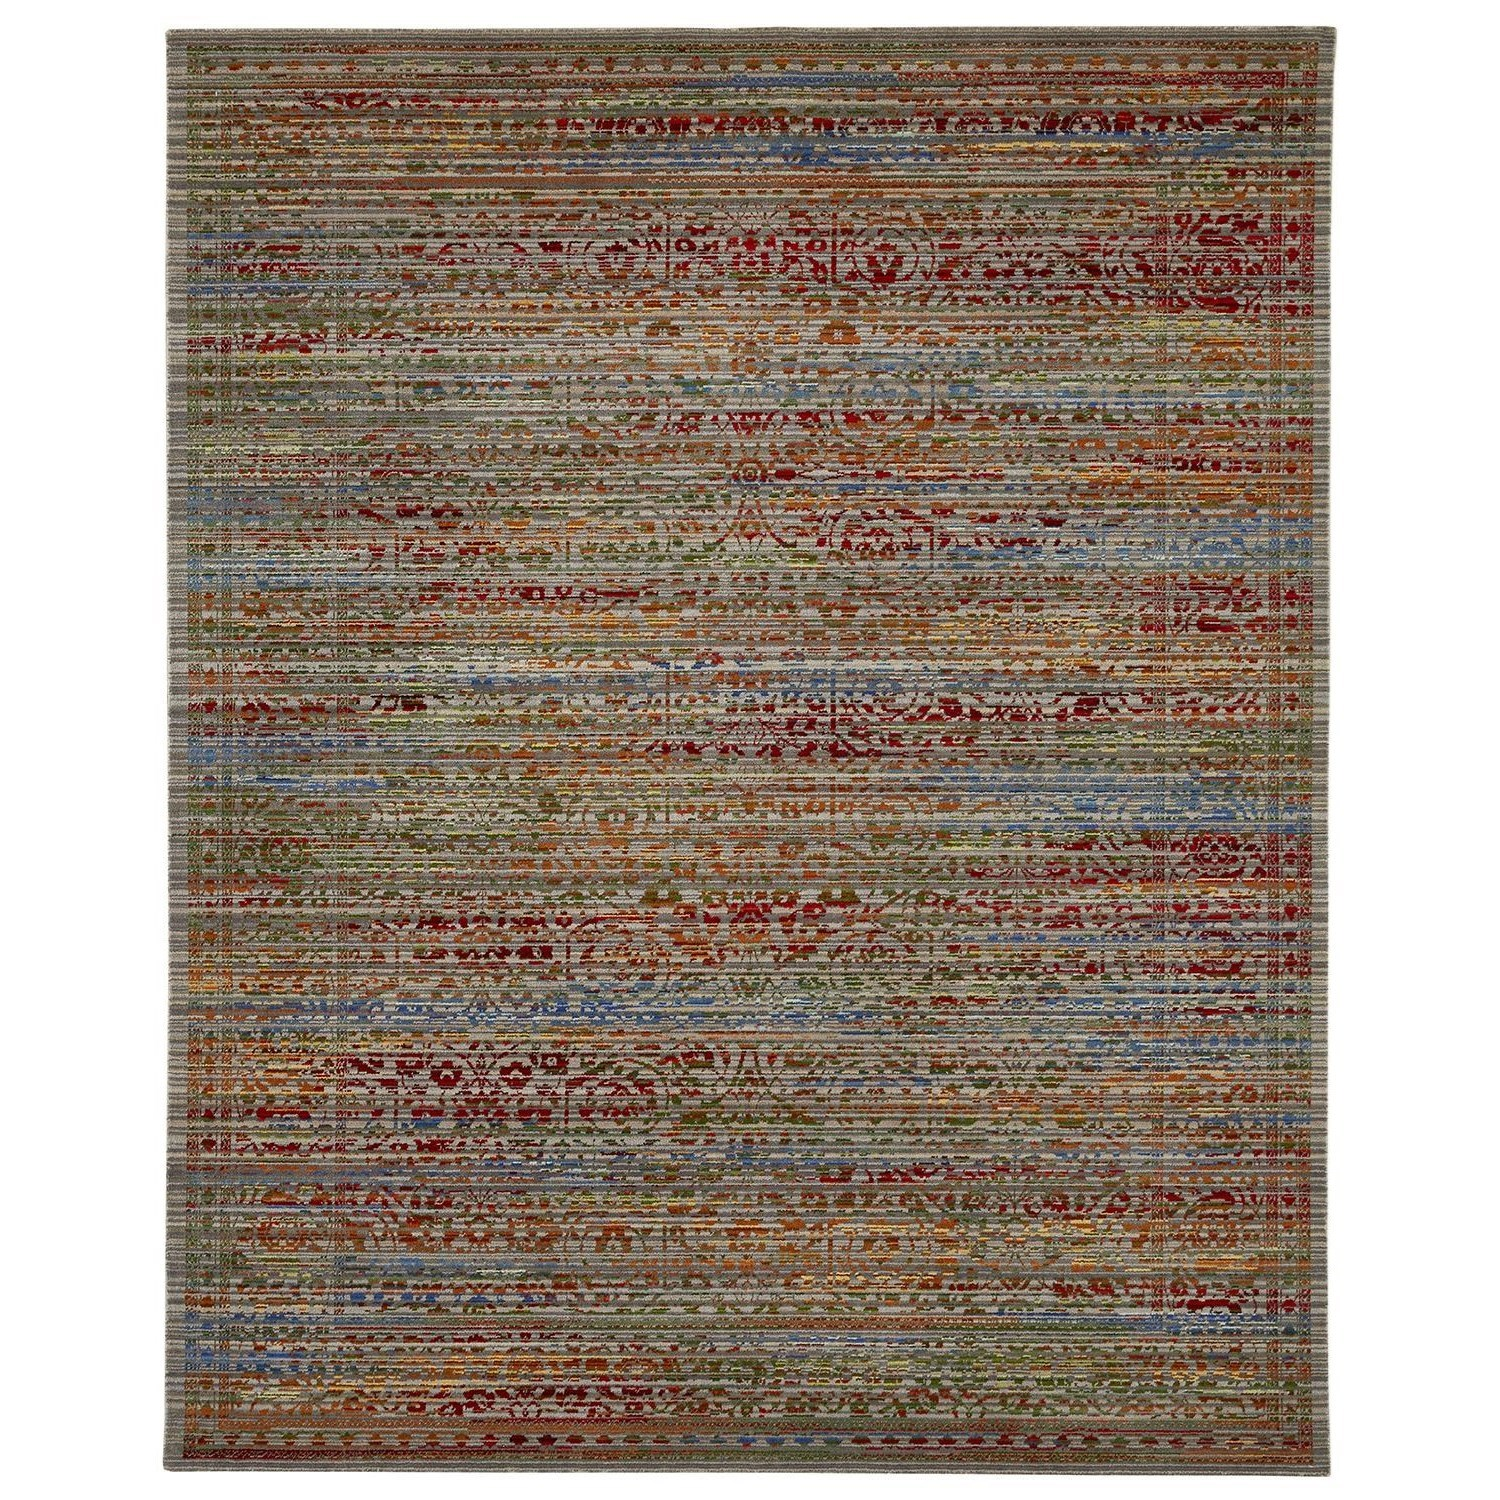 Bravado 7'9x9'9 Shah Gray Rug by Karastan Rugs at Alison Craig Home Furnishings